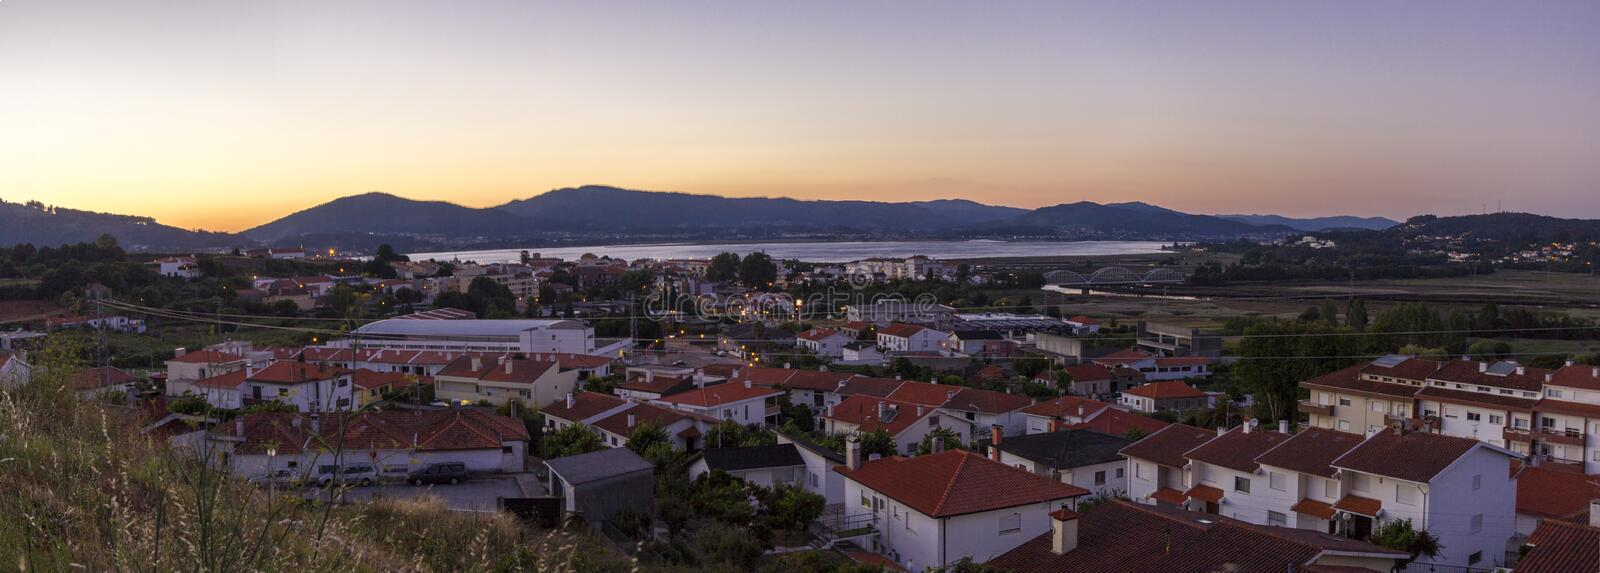 Caminha town overview stock photography